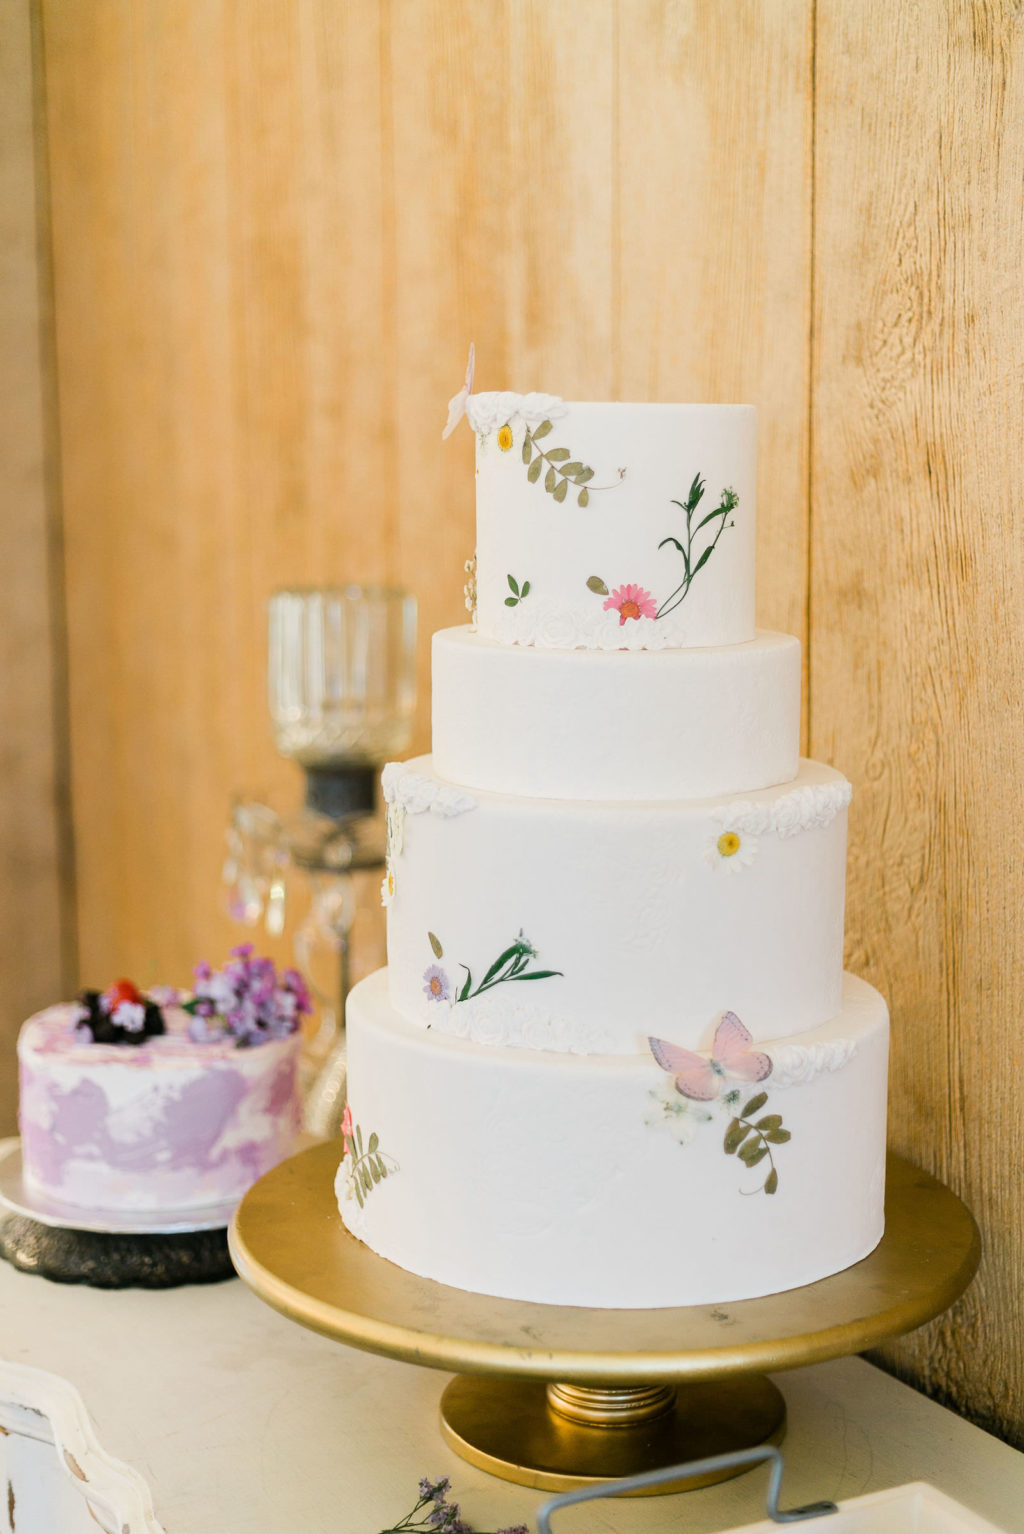 Simple White Four Tier Wedding Cake with Floral Details   Garden Inspired Wedding Cake